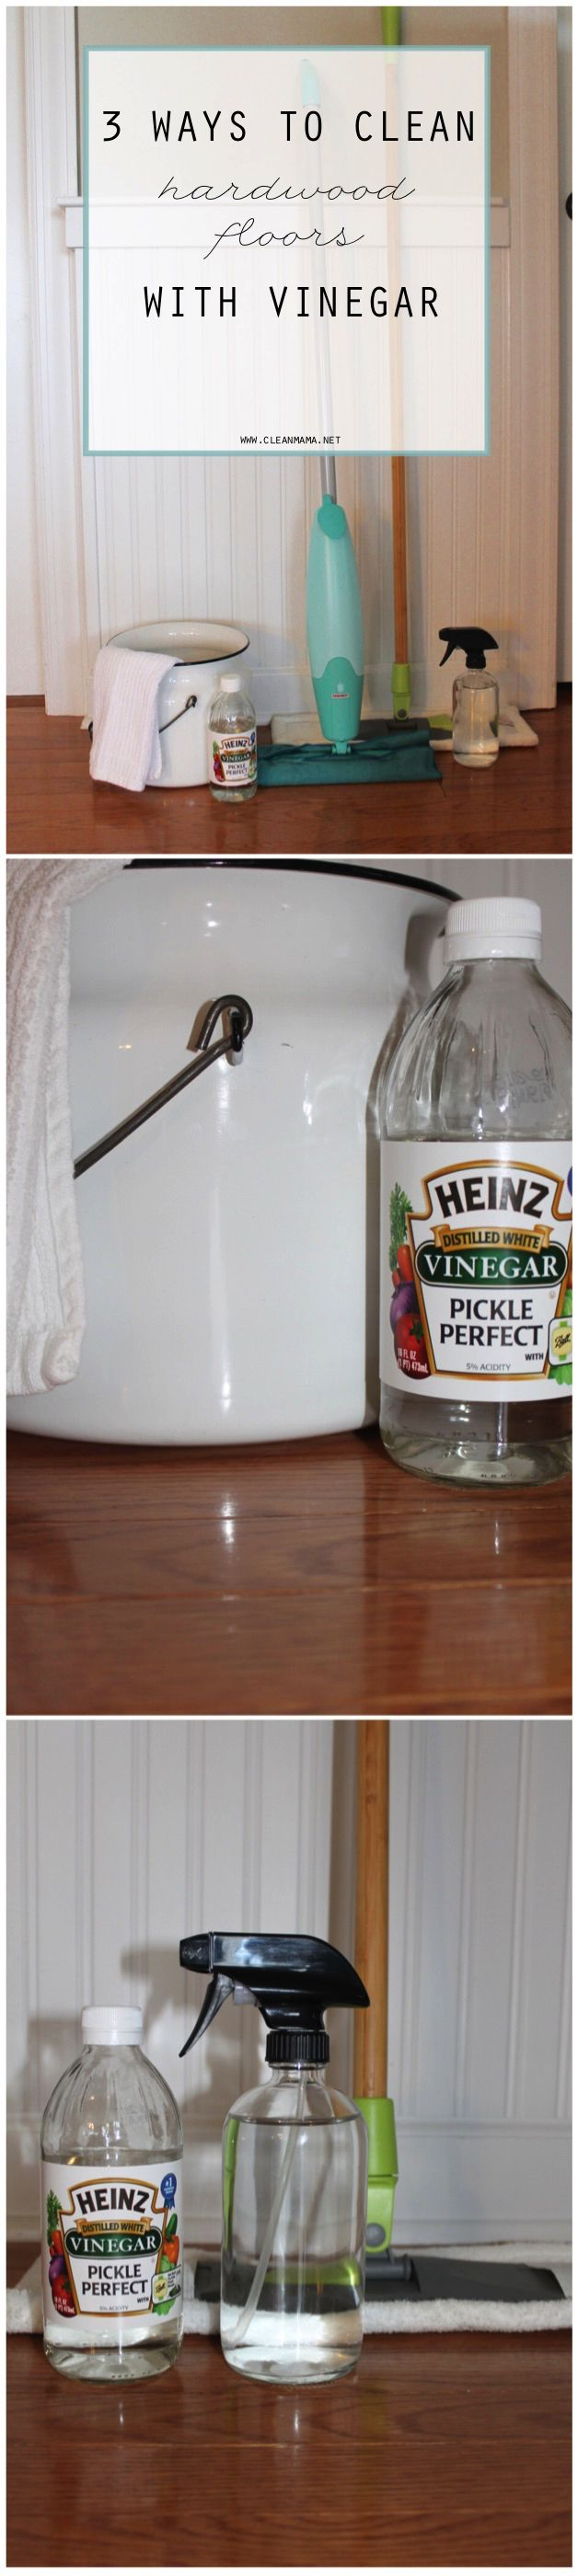 When it comes to controversial cleaning topics, cleaning hardwood floors with vinegar is close to the top believe it or not.